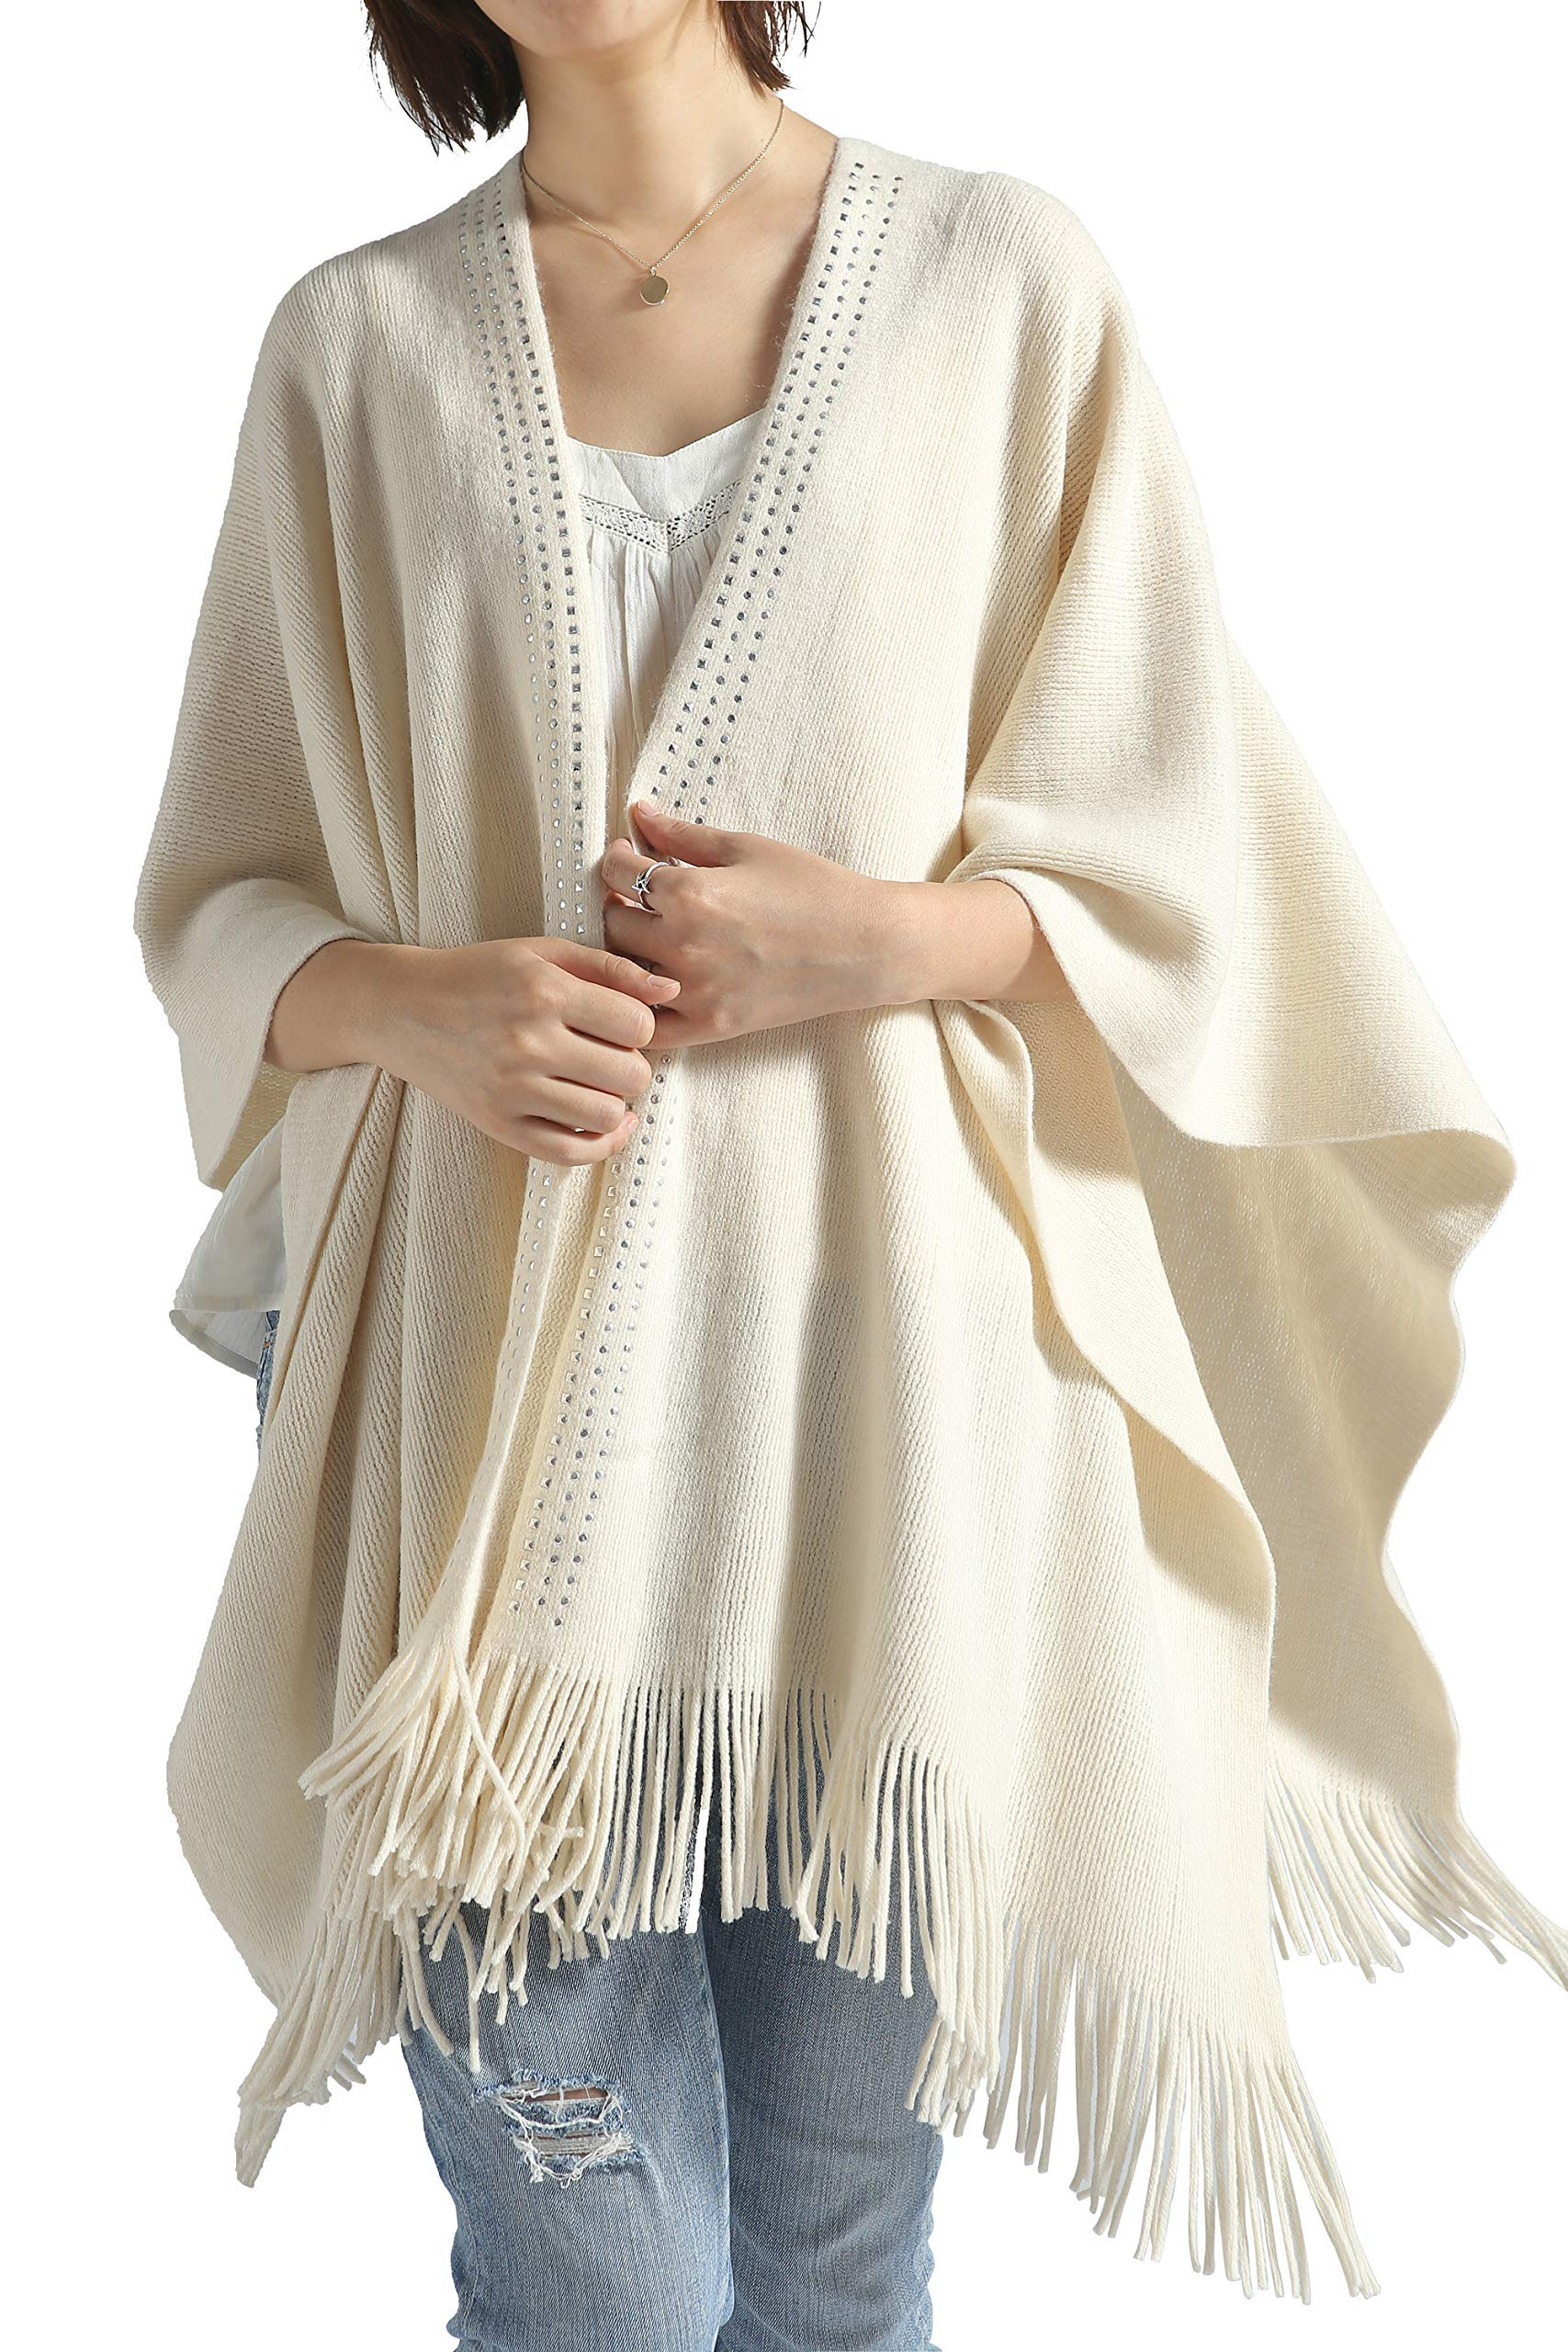 Women Poncho Shawl Cardigan Open Front Elegant Cape Wrap by Moss Rose (Image #2)